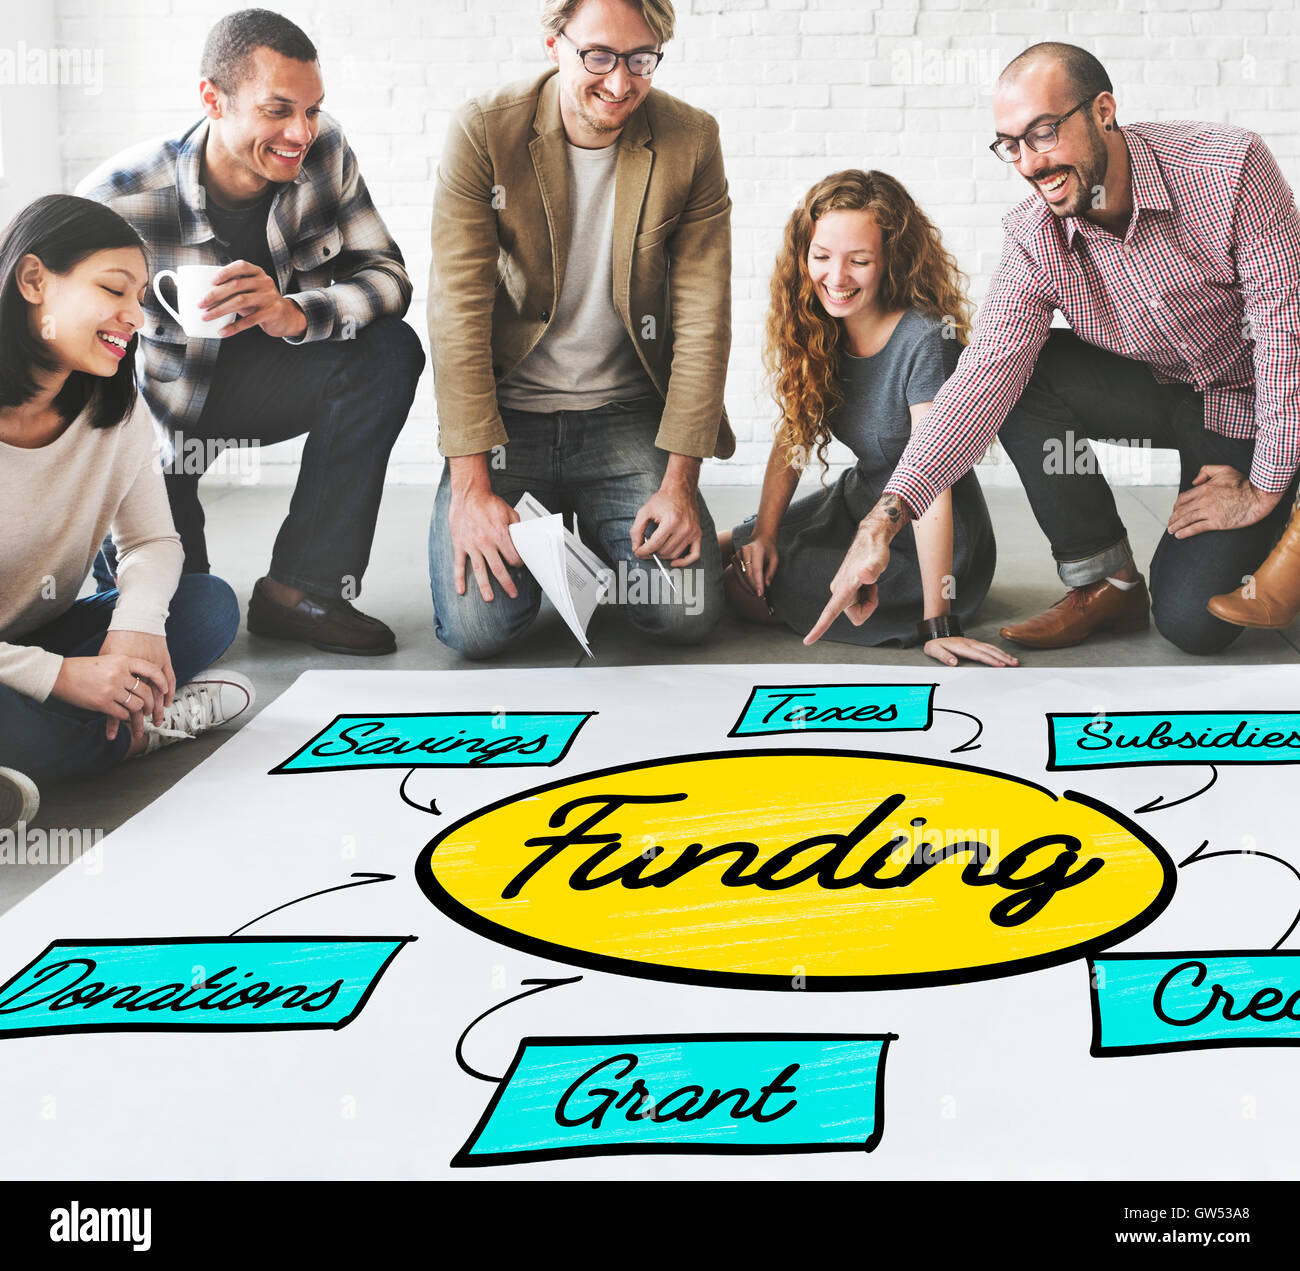 Funding Grant Donation Diagram Concept - Stock Image